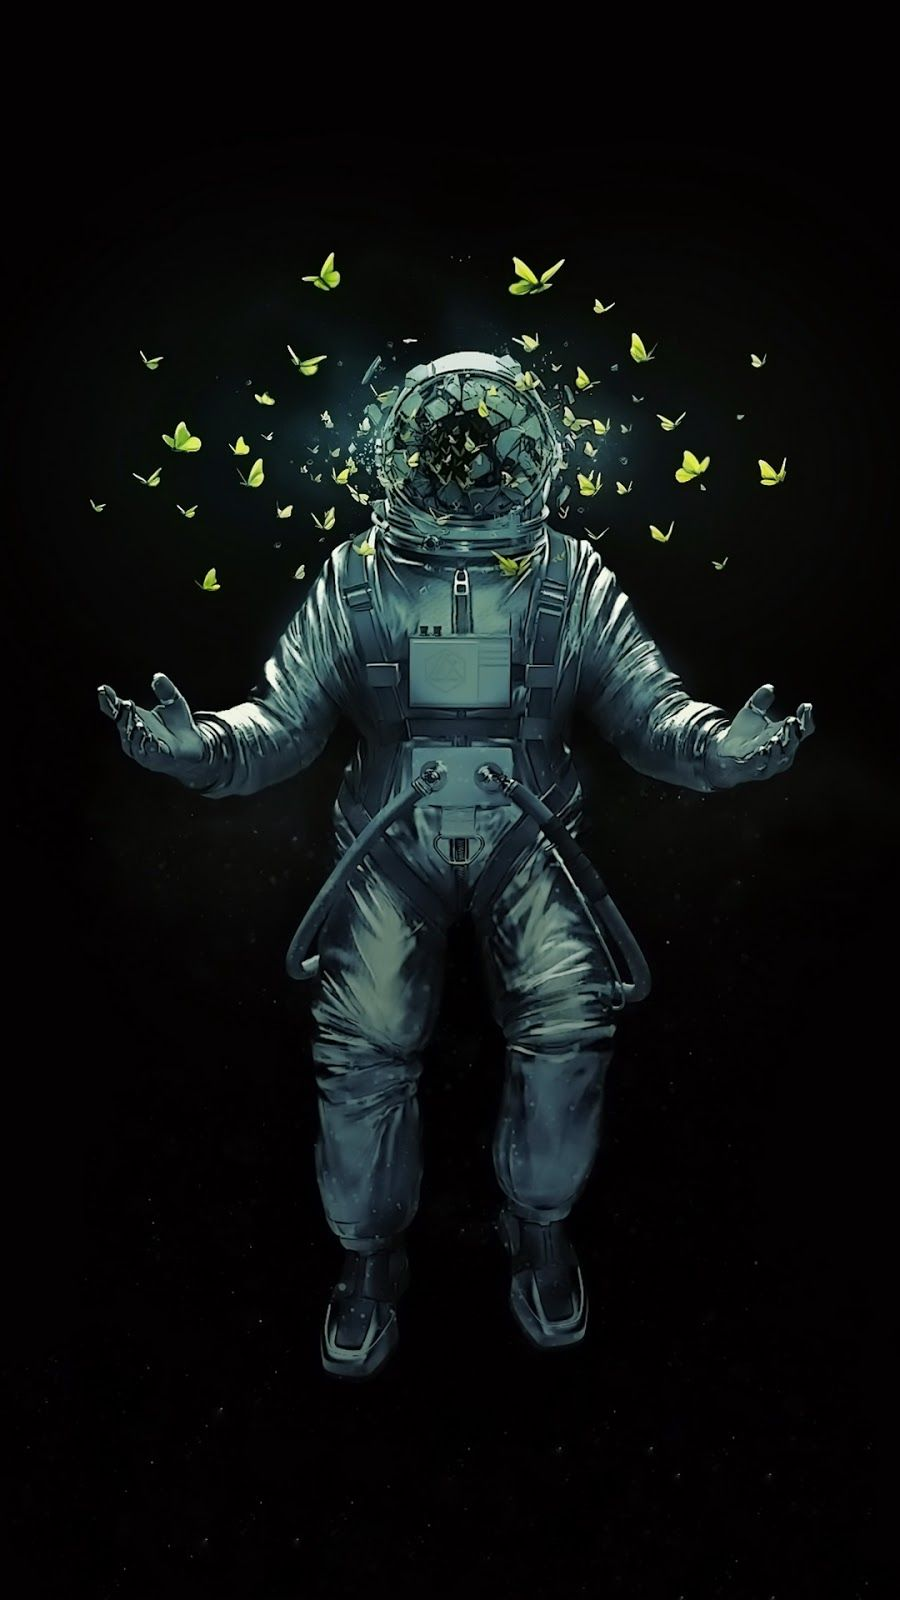 36 Amazing Artistic Wallpapers Android Ddwallpaper Astronaut Art Astronaut Wallpaper Art